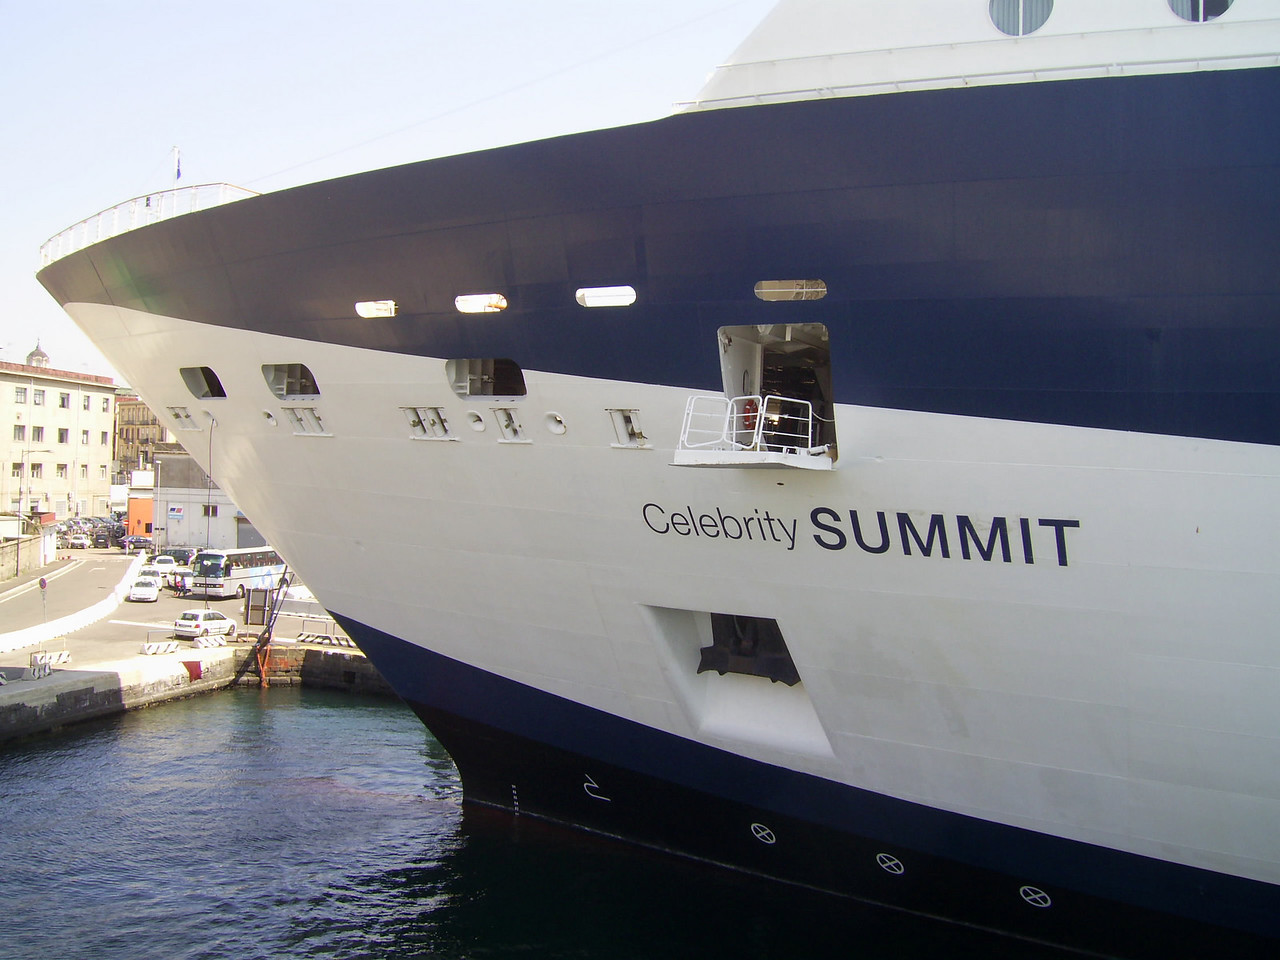 GTS CELEBRITY SUMMIT moored in Napoli by bow.